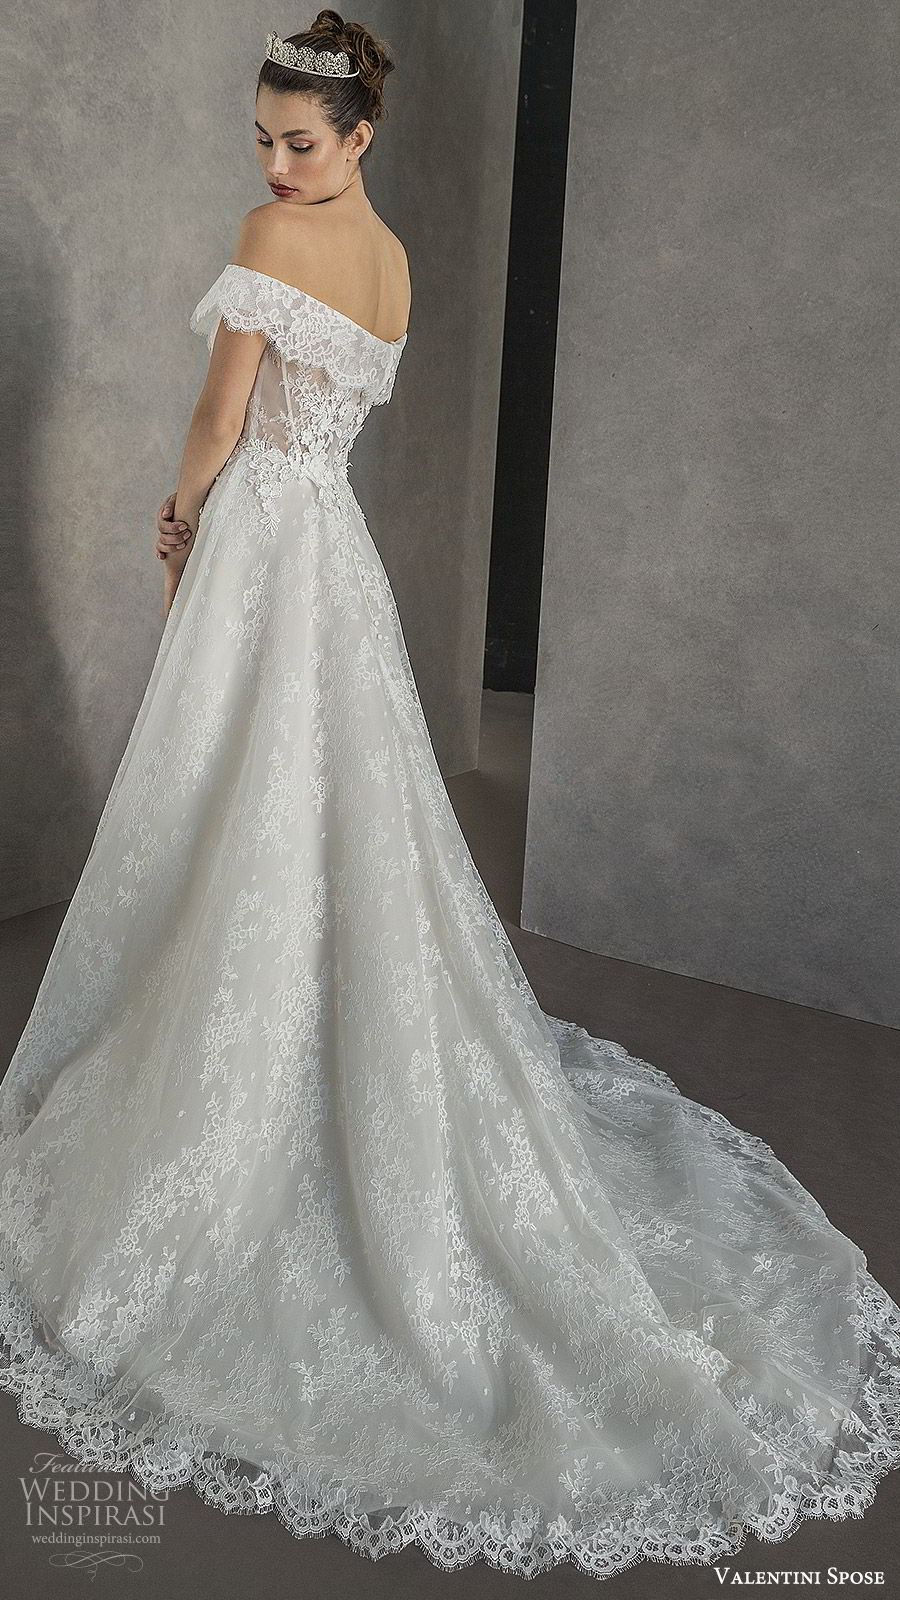 valentini spose spring 2020 bridal off shoulder split sweetheart neckline fully embellished lace a line ball gown wedding dress (7) chapel train romantic princess bv